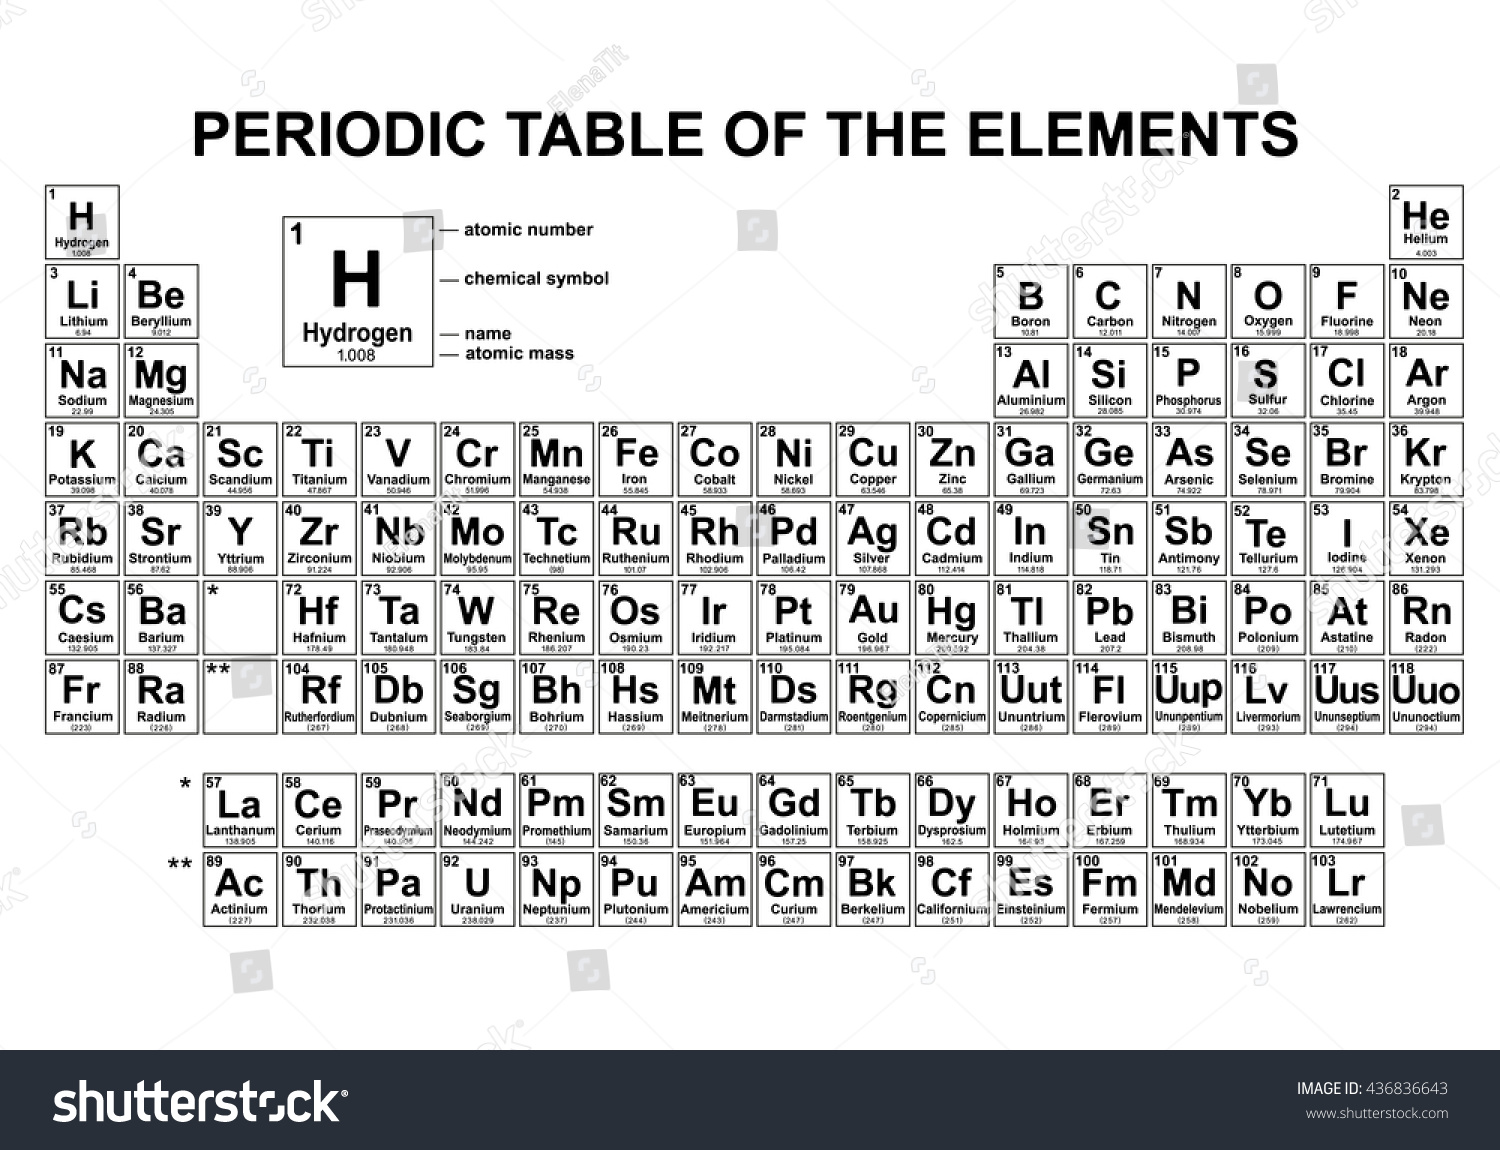 Periodic table elements black white vector stock vector 2018 periodic table of the elements black and white vector illustration with names atomic mass urtaz Gallery